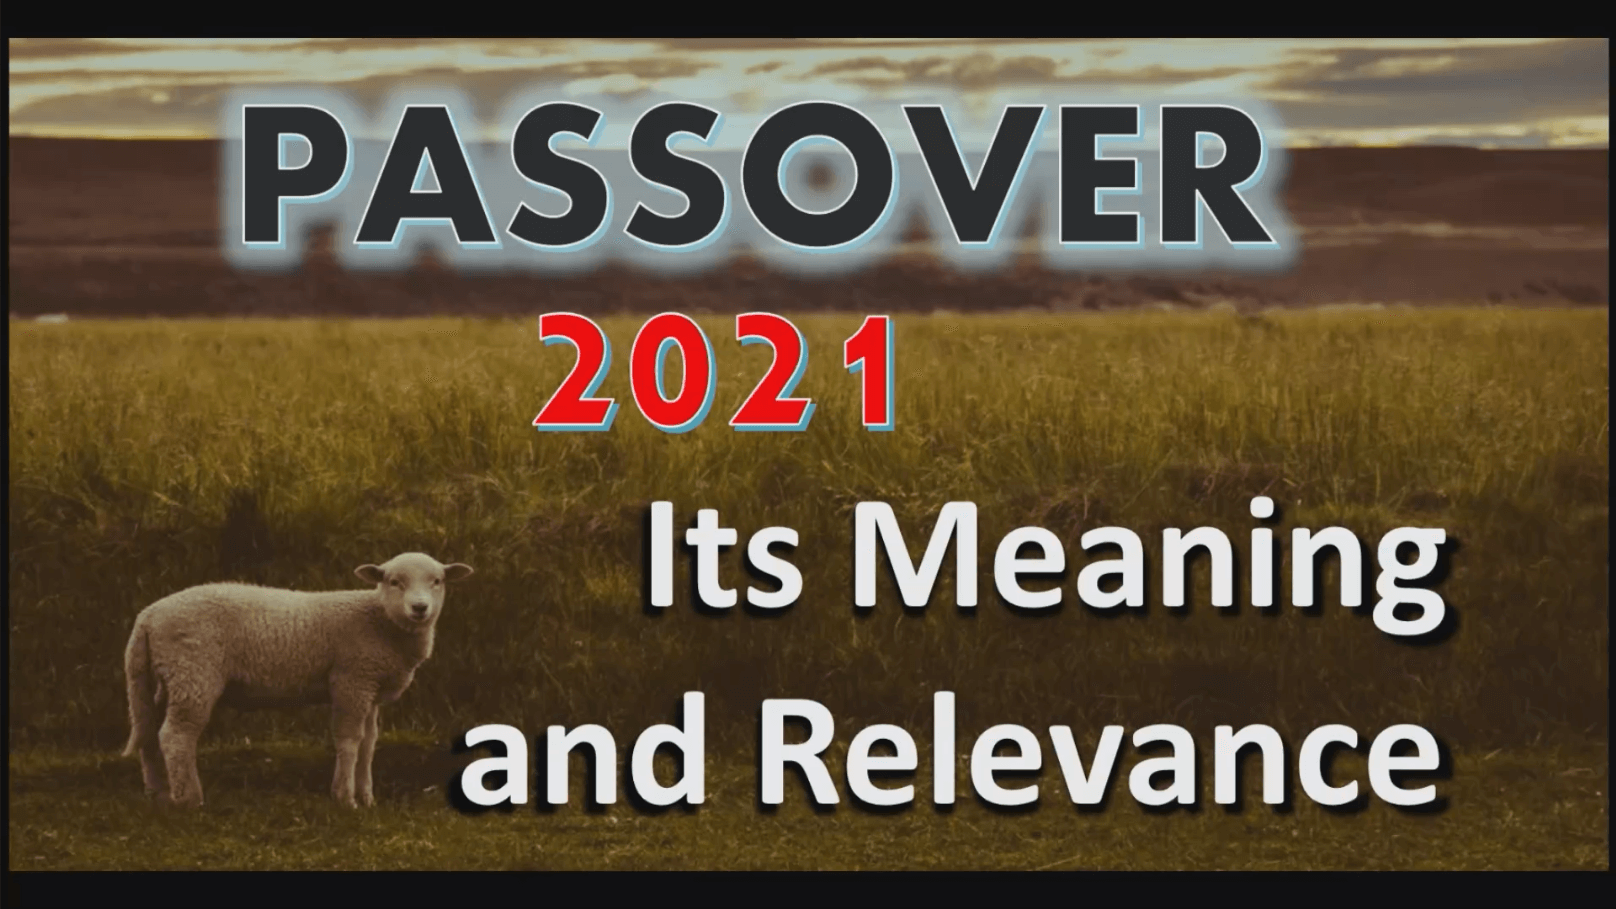 Passover 2021 – It's Meaning and Relevance